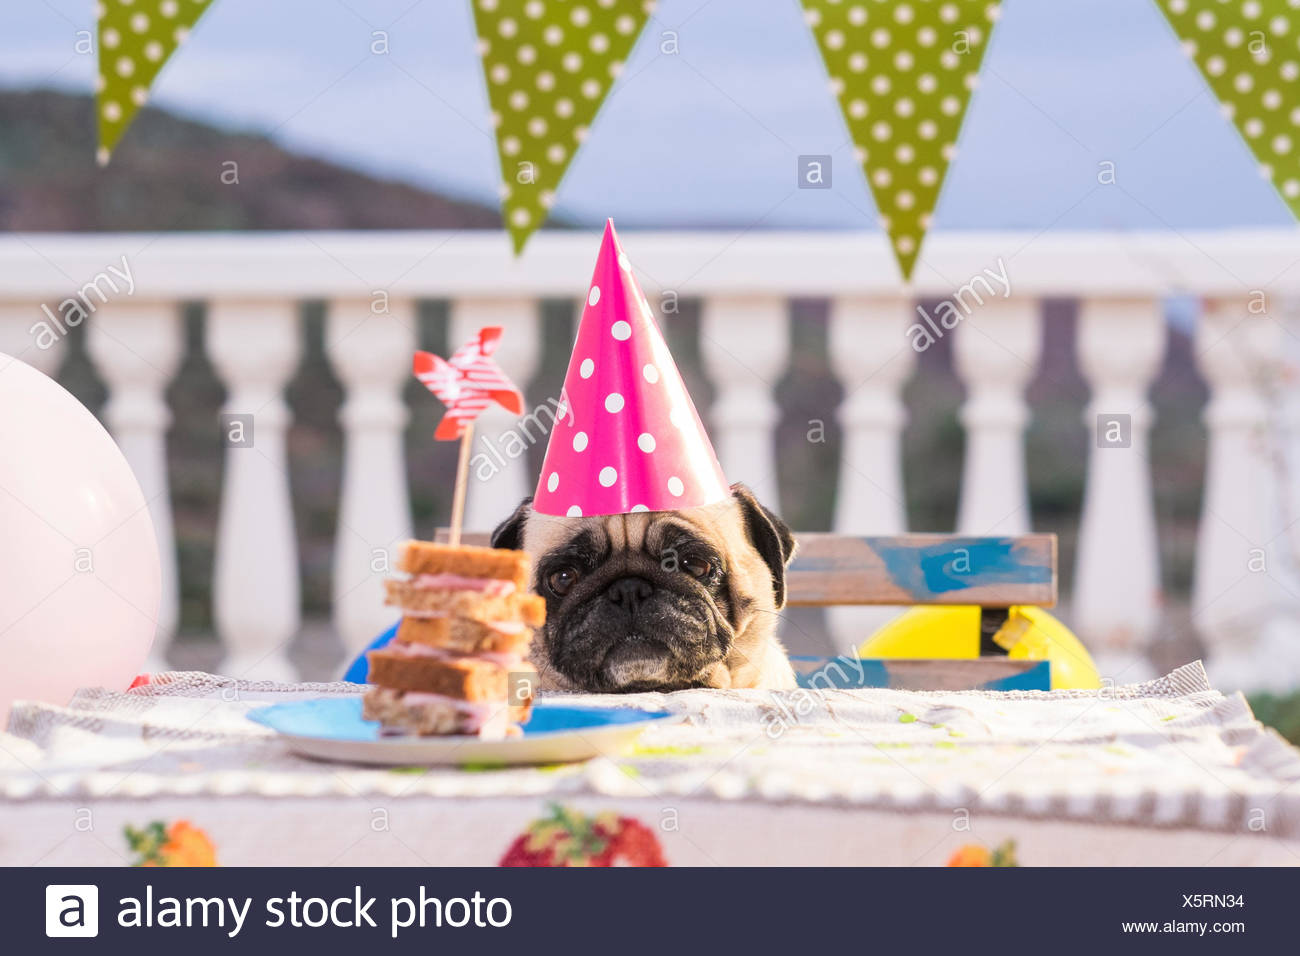 Pug wearing party hat at table   sandwich - Stock Image